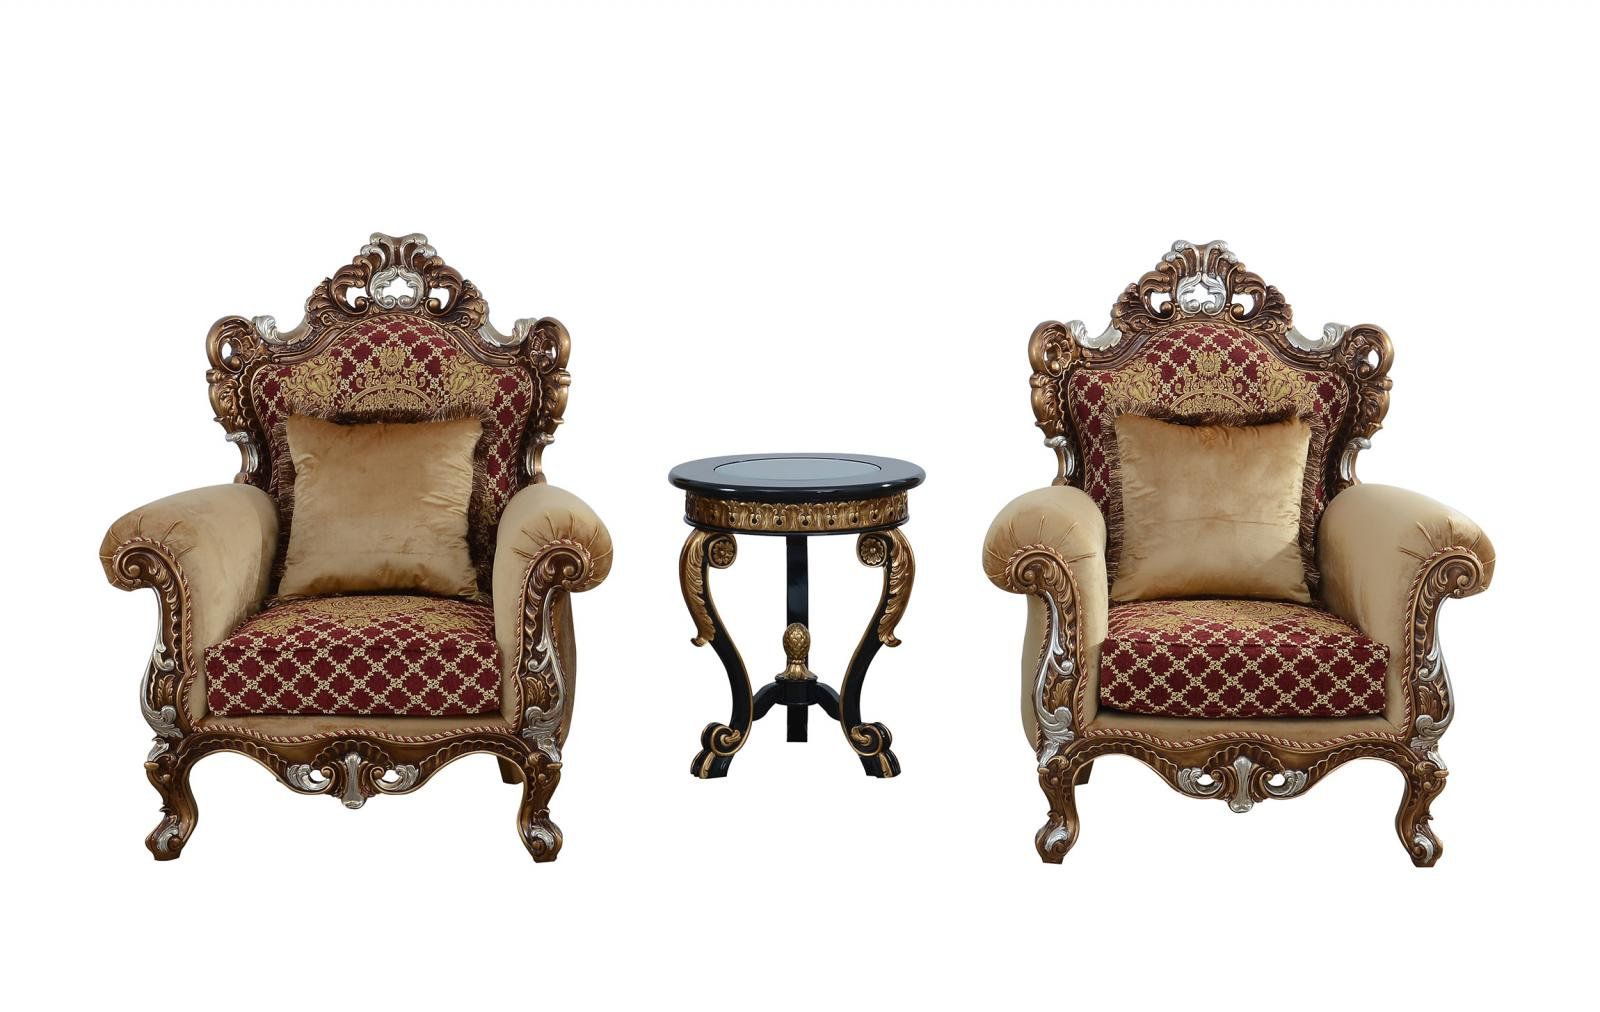 Classic  Traditional Gold   Red Wood  Solid Hardwood and Fabric Arm Chair Set EUROPEAN FURNITURE 42036-C-Set-2